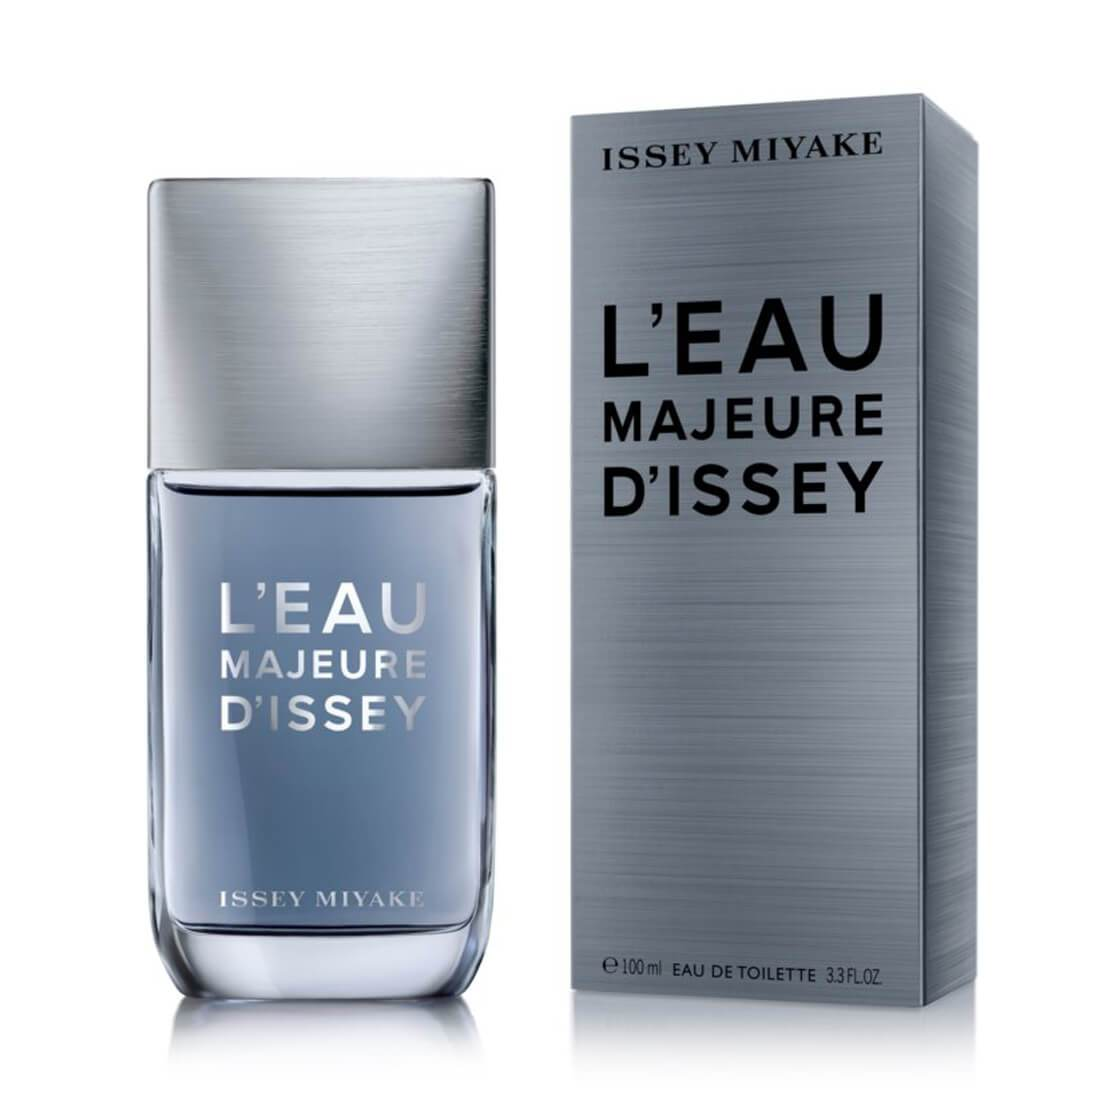 Issey Miyake Majeure EDT Perfume For Men - 100ml